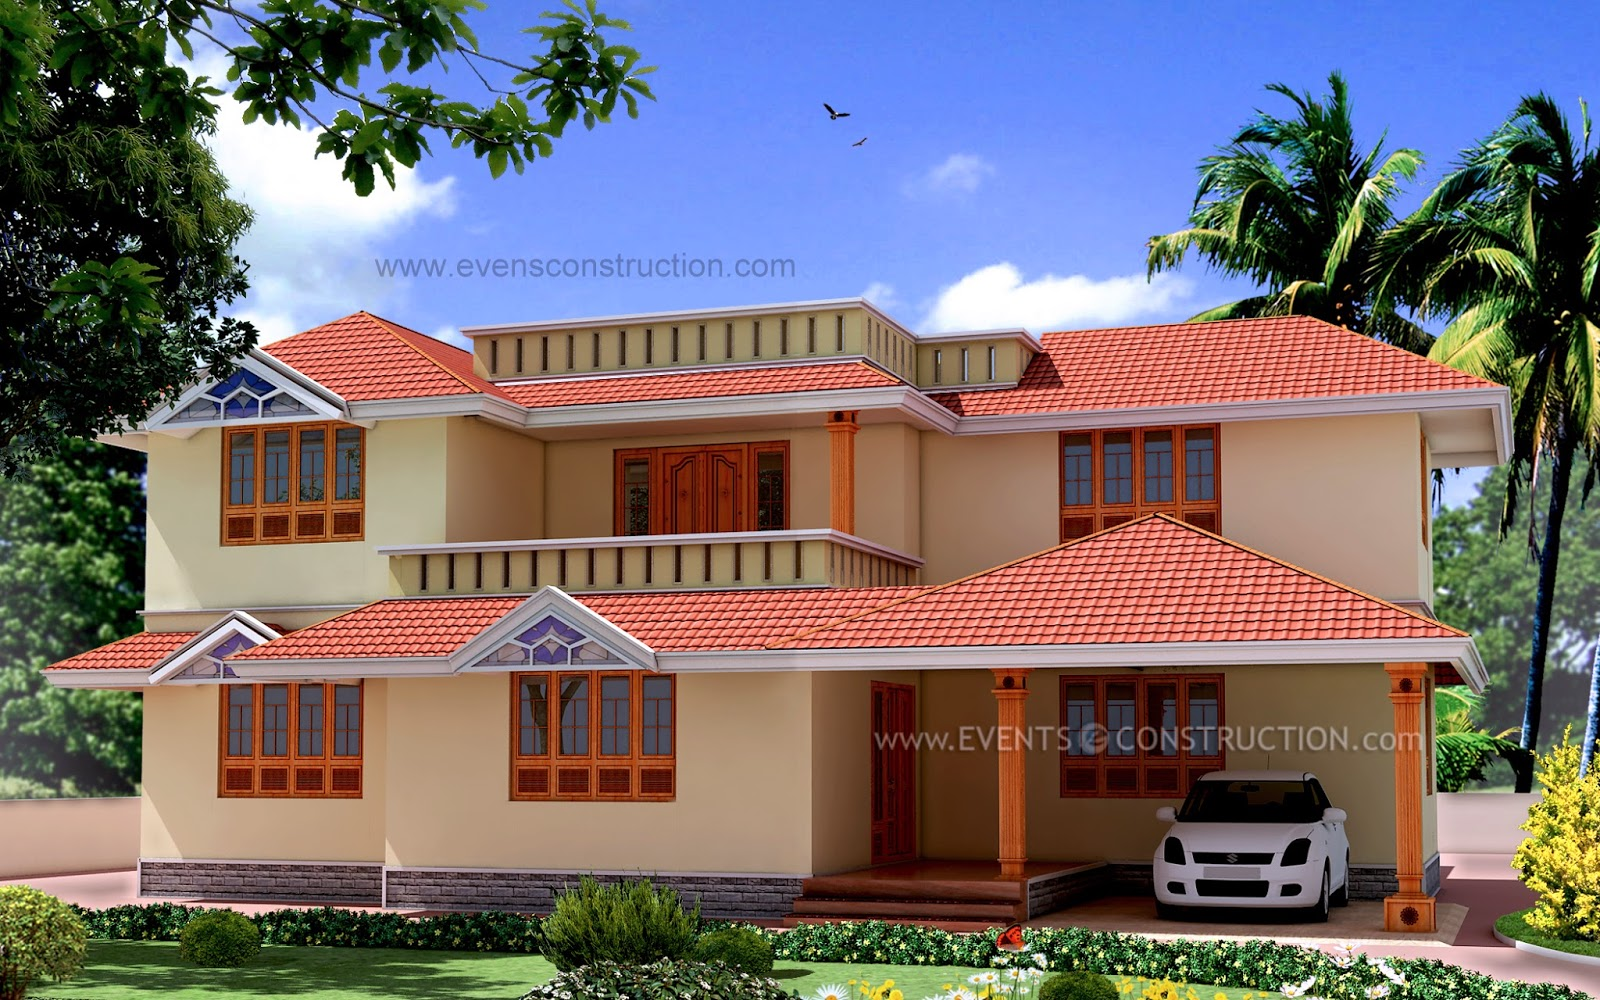 Evens construction pvt ltd four bedroom house elevation for 2500 sq ft home